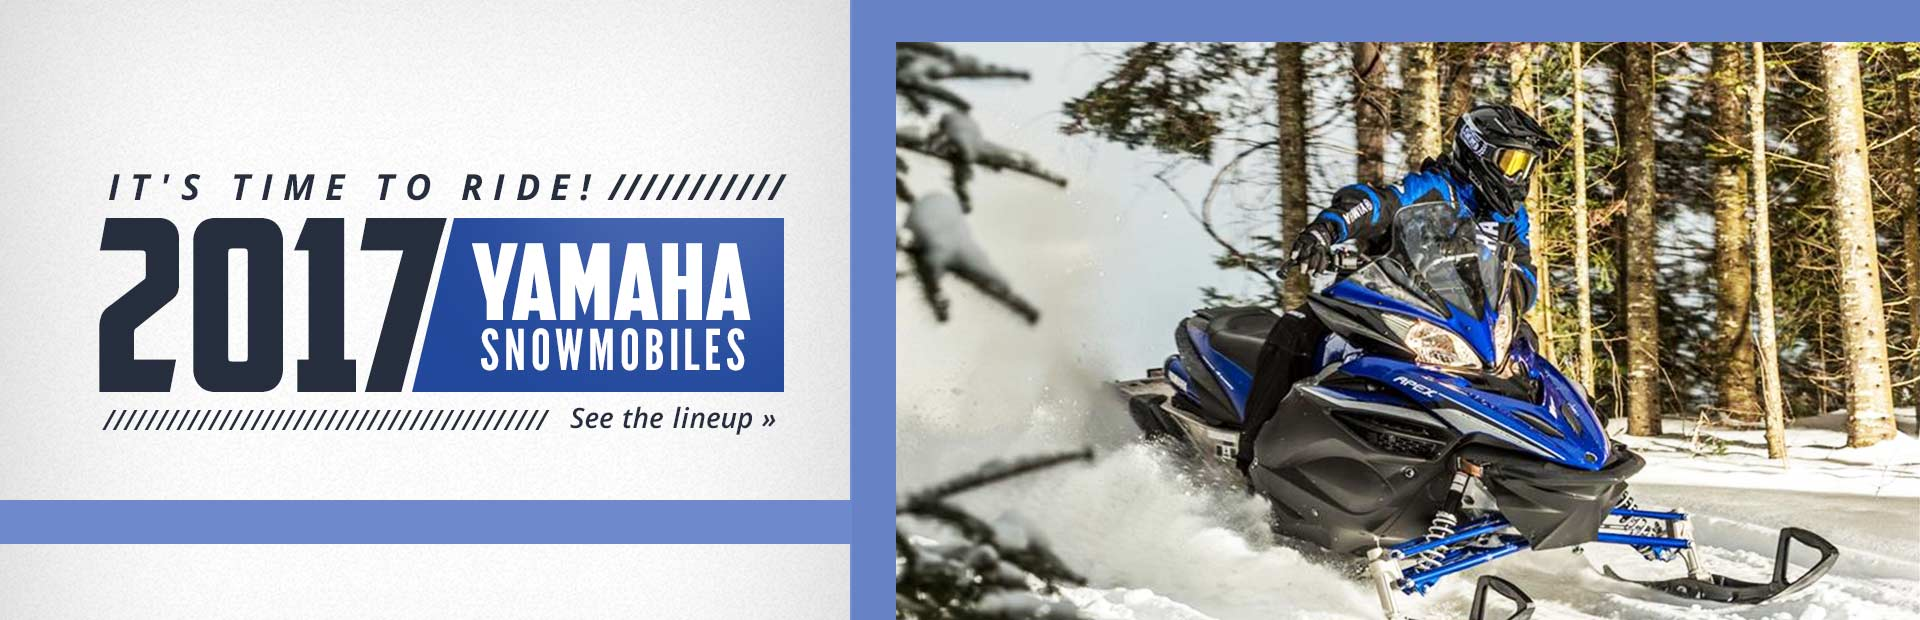 2017 Yamaha Snowmobiles: Click here to see the lineup!